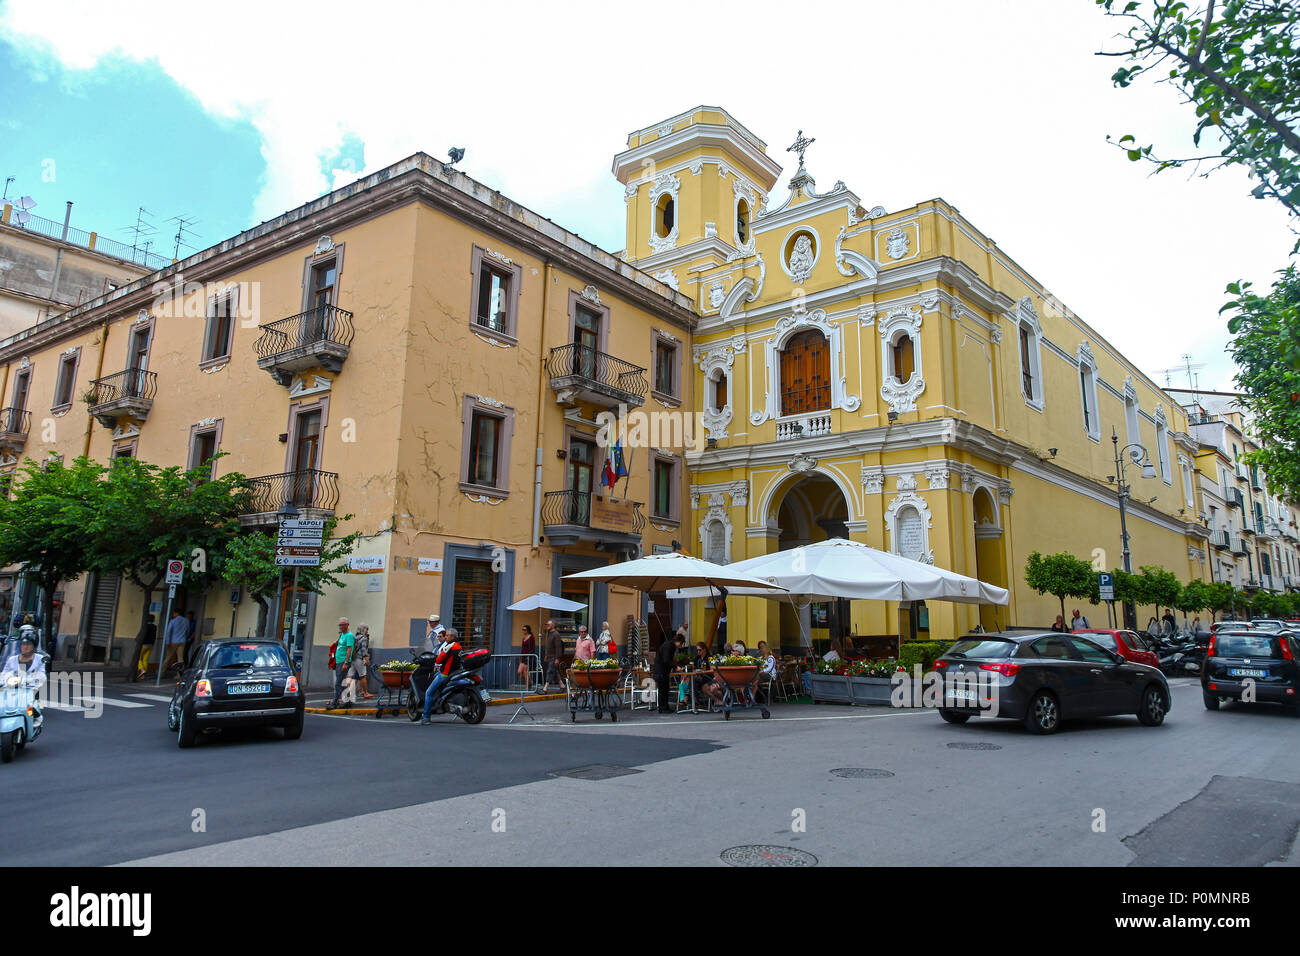 The church or Chiesa di Maria del Carmine photographed from Piazza Tasso, a central place and square in the middle Sorrento, Italy, - Stock Image